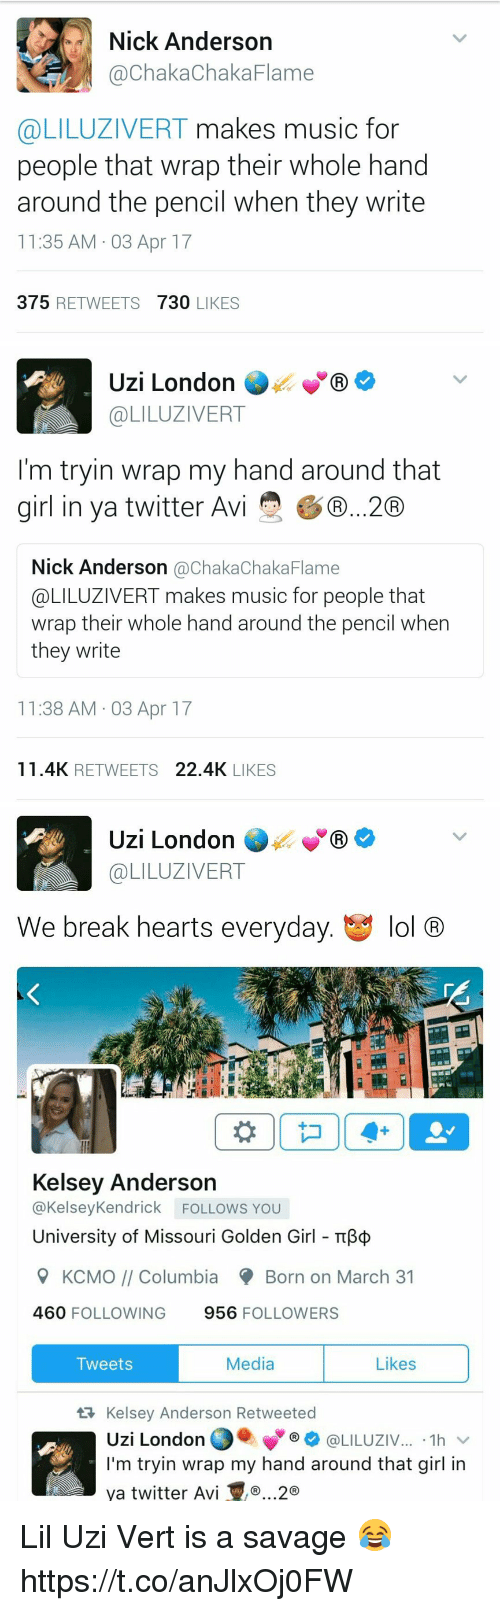 golden girls: Nick Anderson  @Chaka ChakaFlame  @LILUZIVERT makes music for  people that wrap their whole hand  around the pencil when they write  11:35 AM 03 Apr 17  375  RETWEETS  730  LIKES   Uzi London  COLILUZIVERT  I'm tryin wrap my hand around that  girl in ya twitter Avi  GD...20  Nick Anderson  achakaChaka Flame  @LILUZIVERT makes music for people that  wrap their whole hand around the pencil when  they write  11:38 AM 03 Apr 17  11.4K RETWEETS  22.4K  LIKES   Uzi London  GR  @LILUZIVERT  We break hearts everyday  t y lol  CRO  Kelsey Anderson  @Kelsey Kendrick FOLLOWS YOU  University of Missouri Golden Girl TTB  9 KCMO Columbia Born on March 31  460  FOLLOWING  956  FOLLOWERS  Media  Likes  Tweets  tR Kelsey Anderson Retweeted  Uzi London  @LILUZIV  1h  I'm tryin wrap my hand around that girl in  ya twitter Avi ..2 Lil Uzi Vert is a savage 😂 https://t.co/anJlxOj0FW